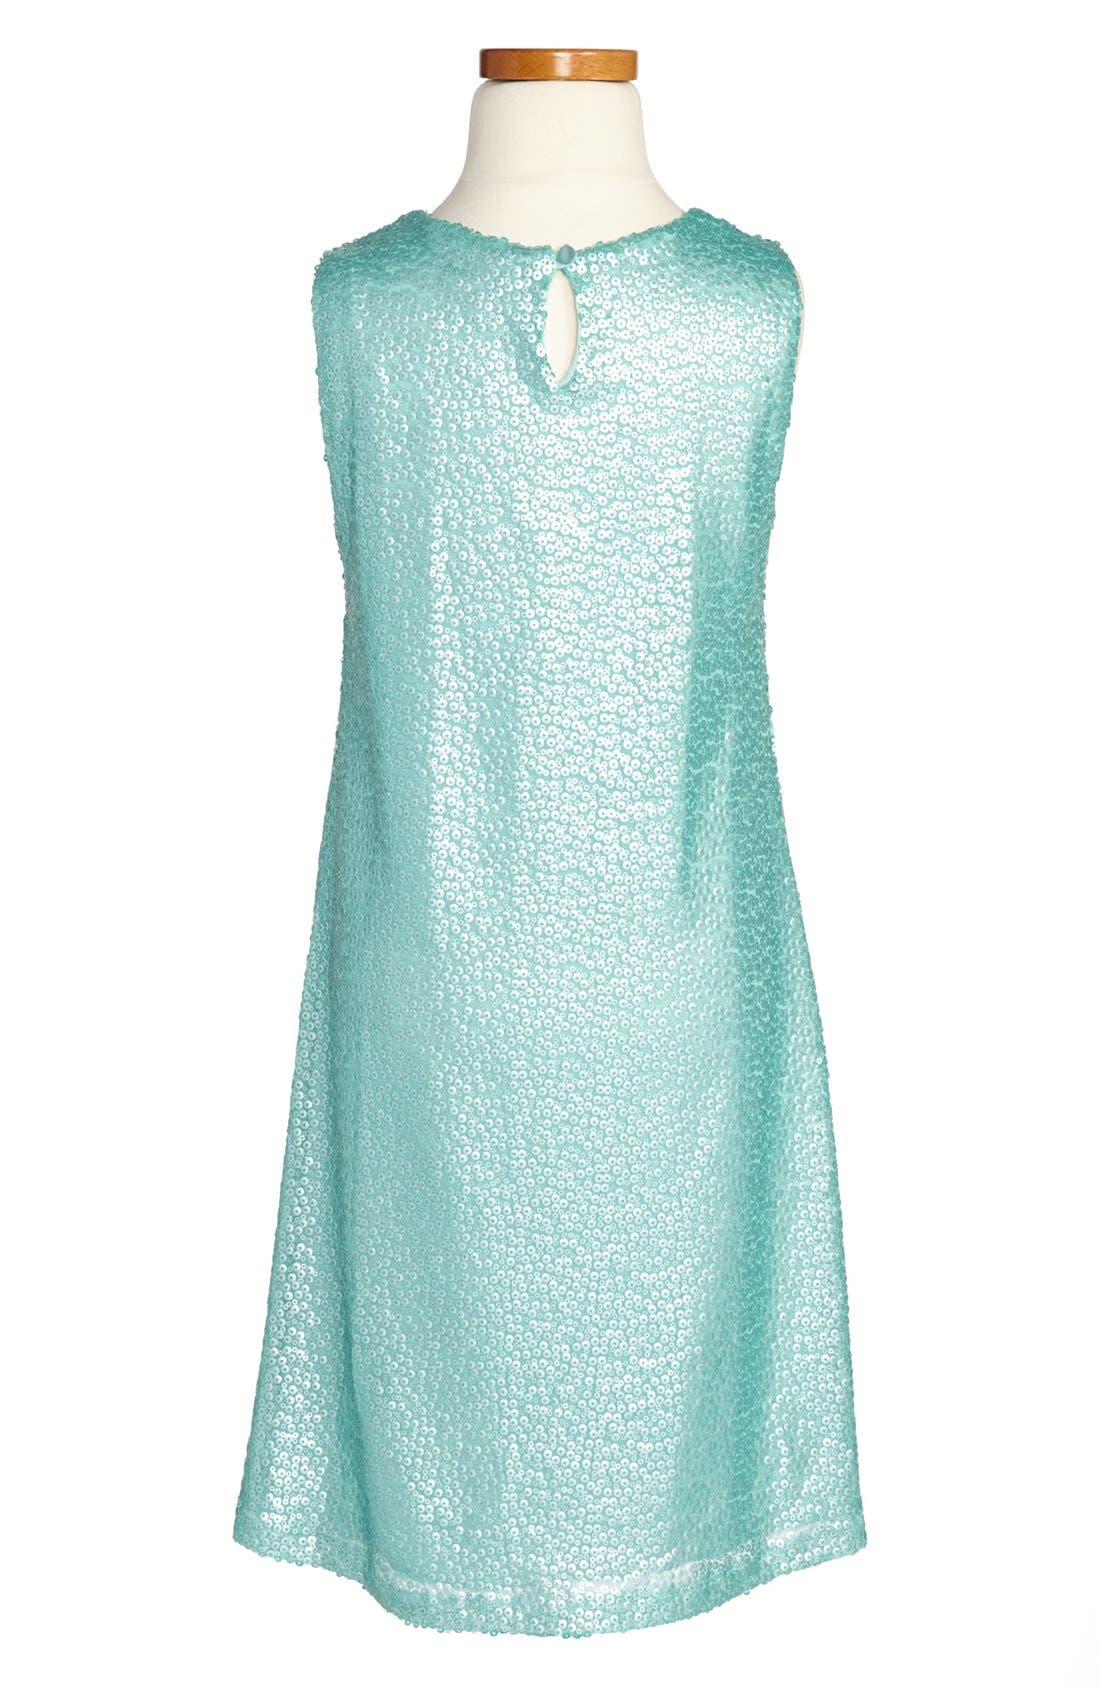 Alternate Image 2  - Zunie Sequin Tank Dress (Big Girls)